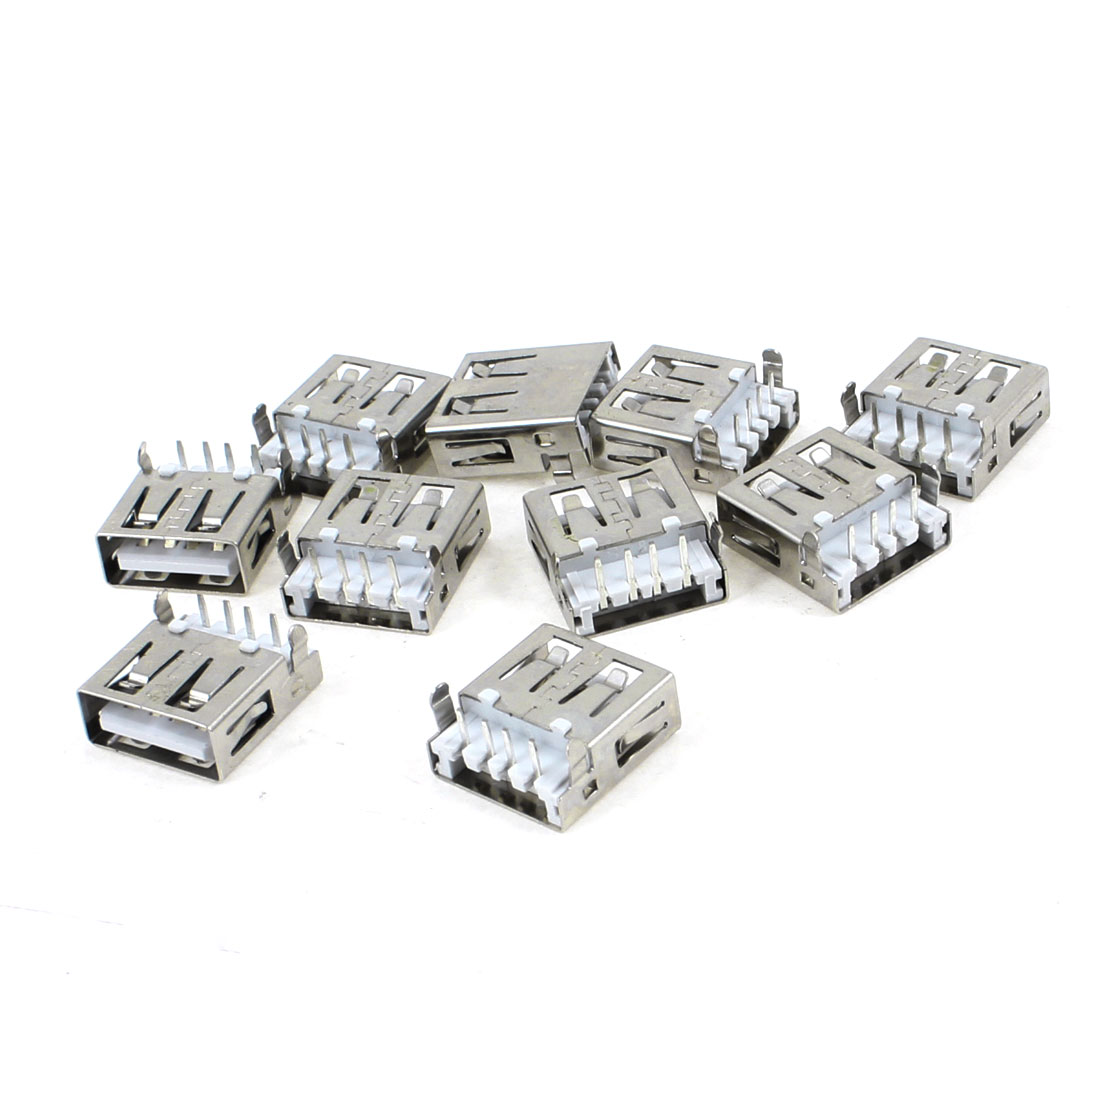 10 Pcs Single USB 2.0 Type A Right Angle 4-Pin DIP Female Jack Socket